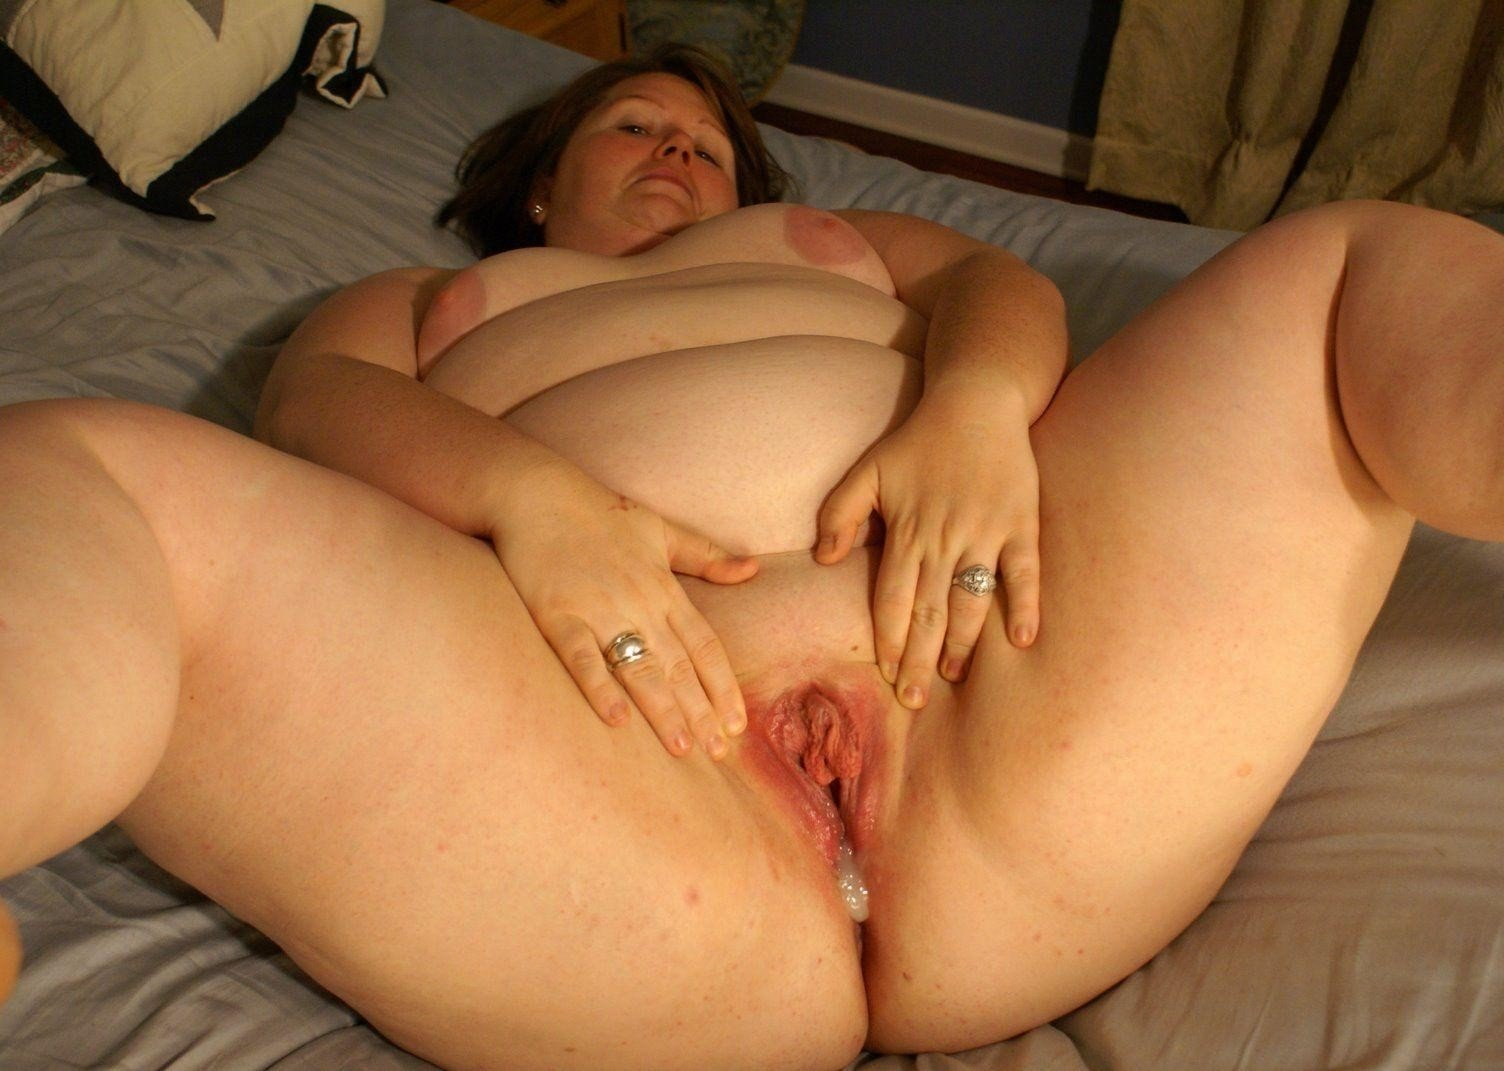 Fat Lady Unrolling Pink Vagina Vulva Nude Girls Pictures